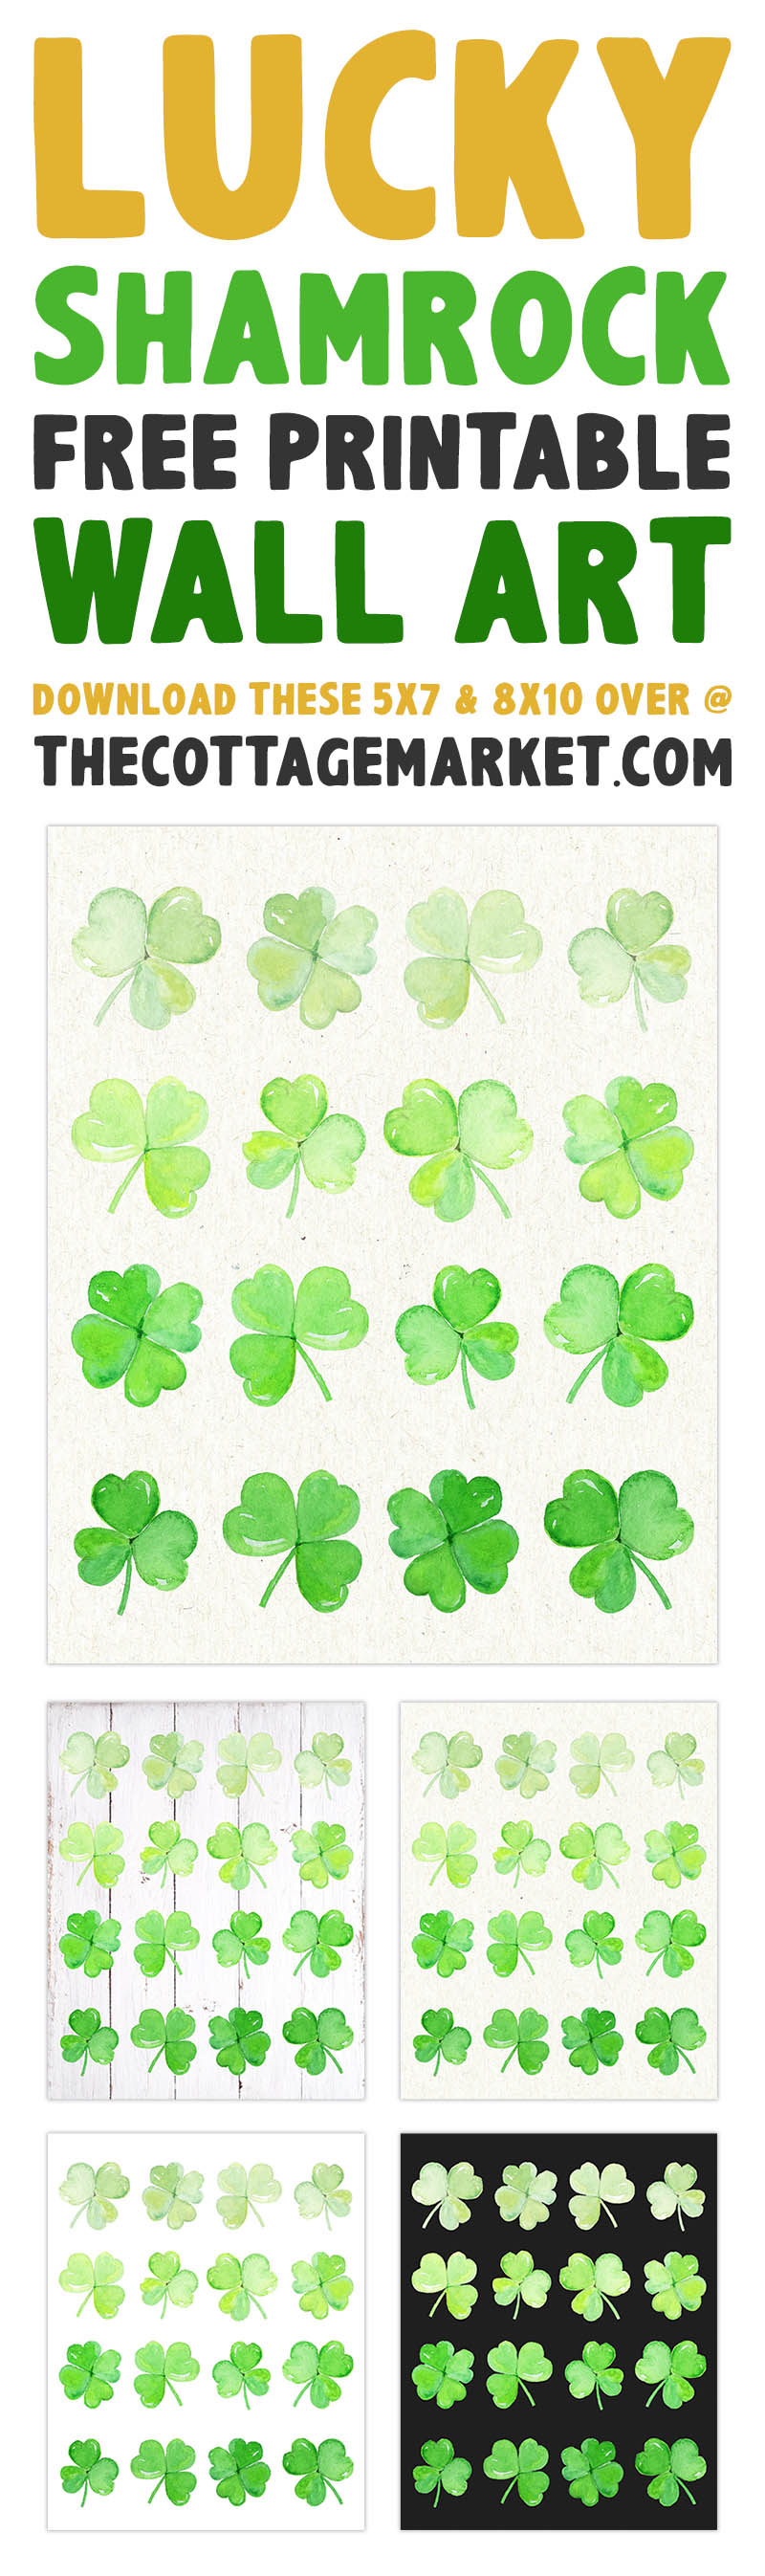 This Lucky Shamrock Free Printable Wall Art is just what you need to add a touch of the Irish LUCK to your home.  No matter if you are Irish or not... St. Patrick's Day... everyone's Irish!